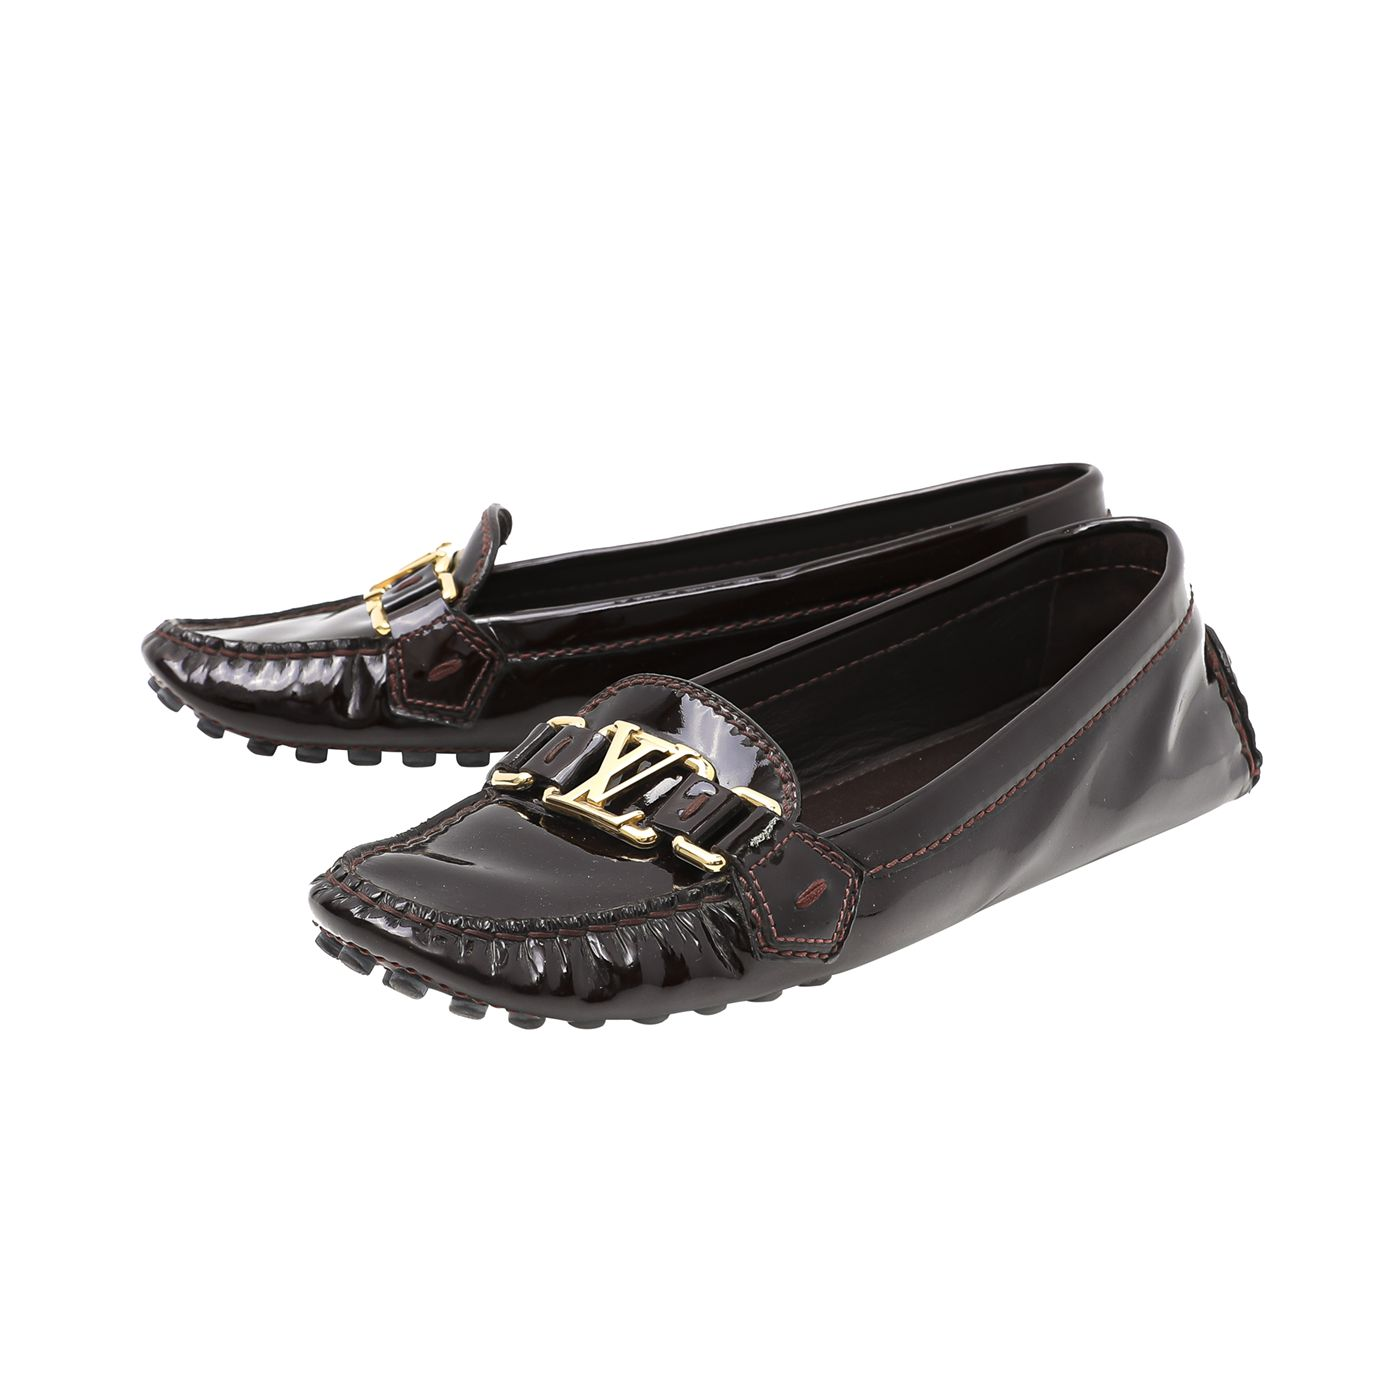 Louis Vuitton Amarante Oxford Float Loafers 36.5